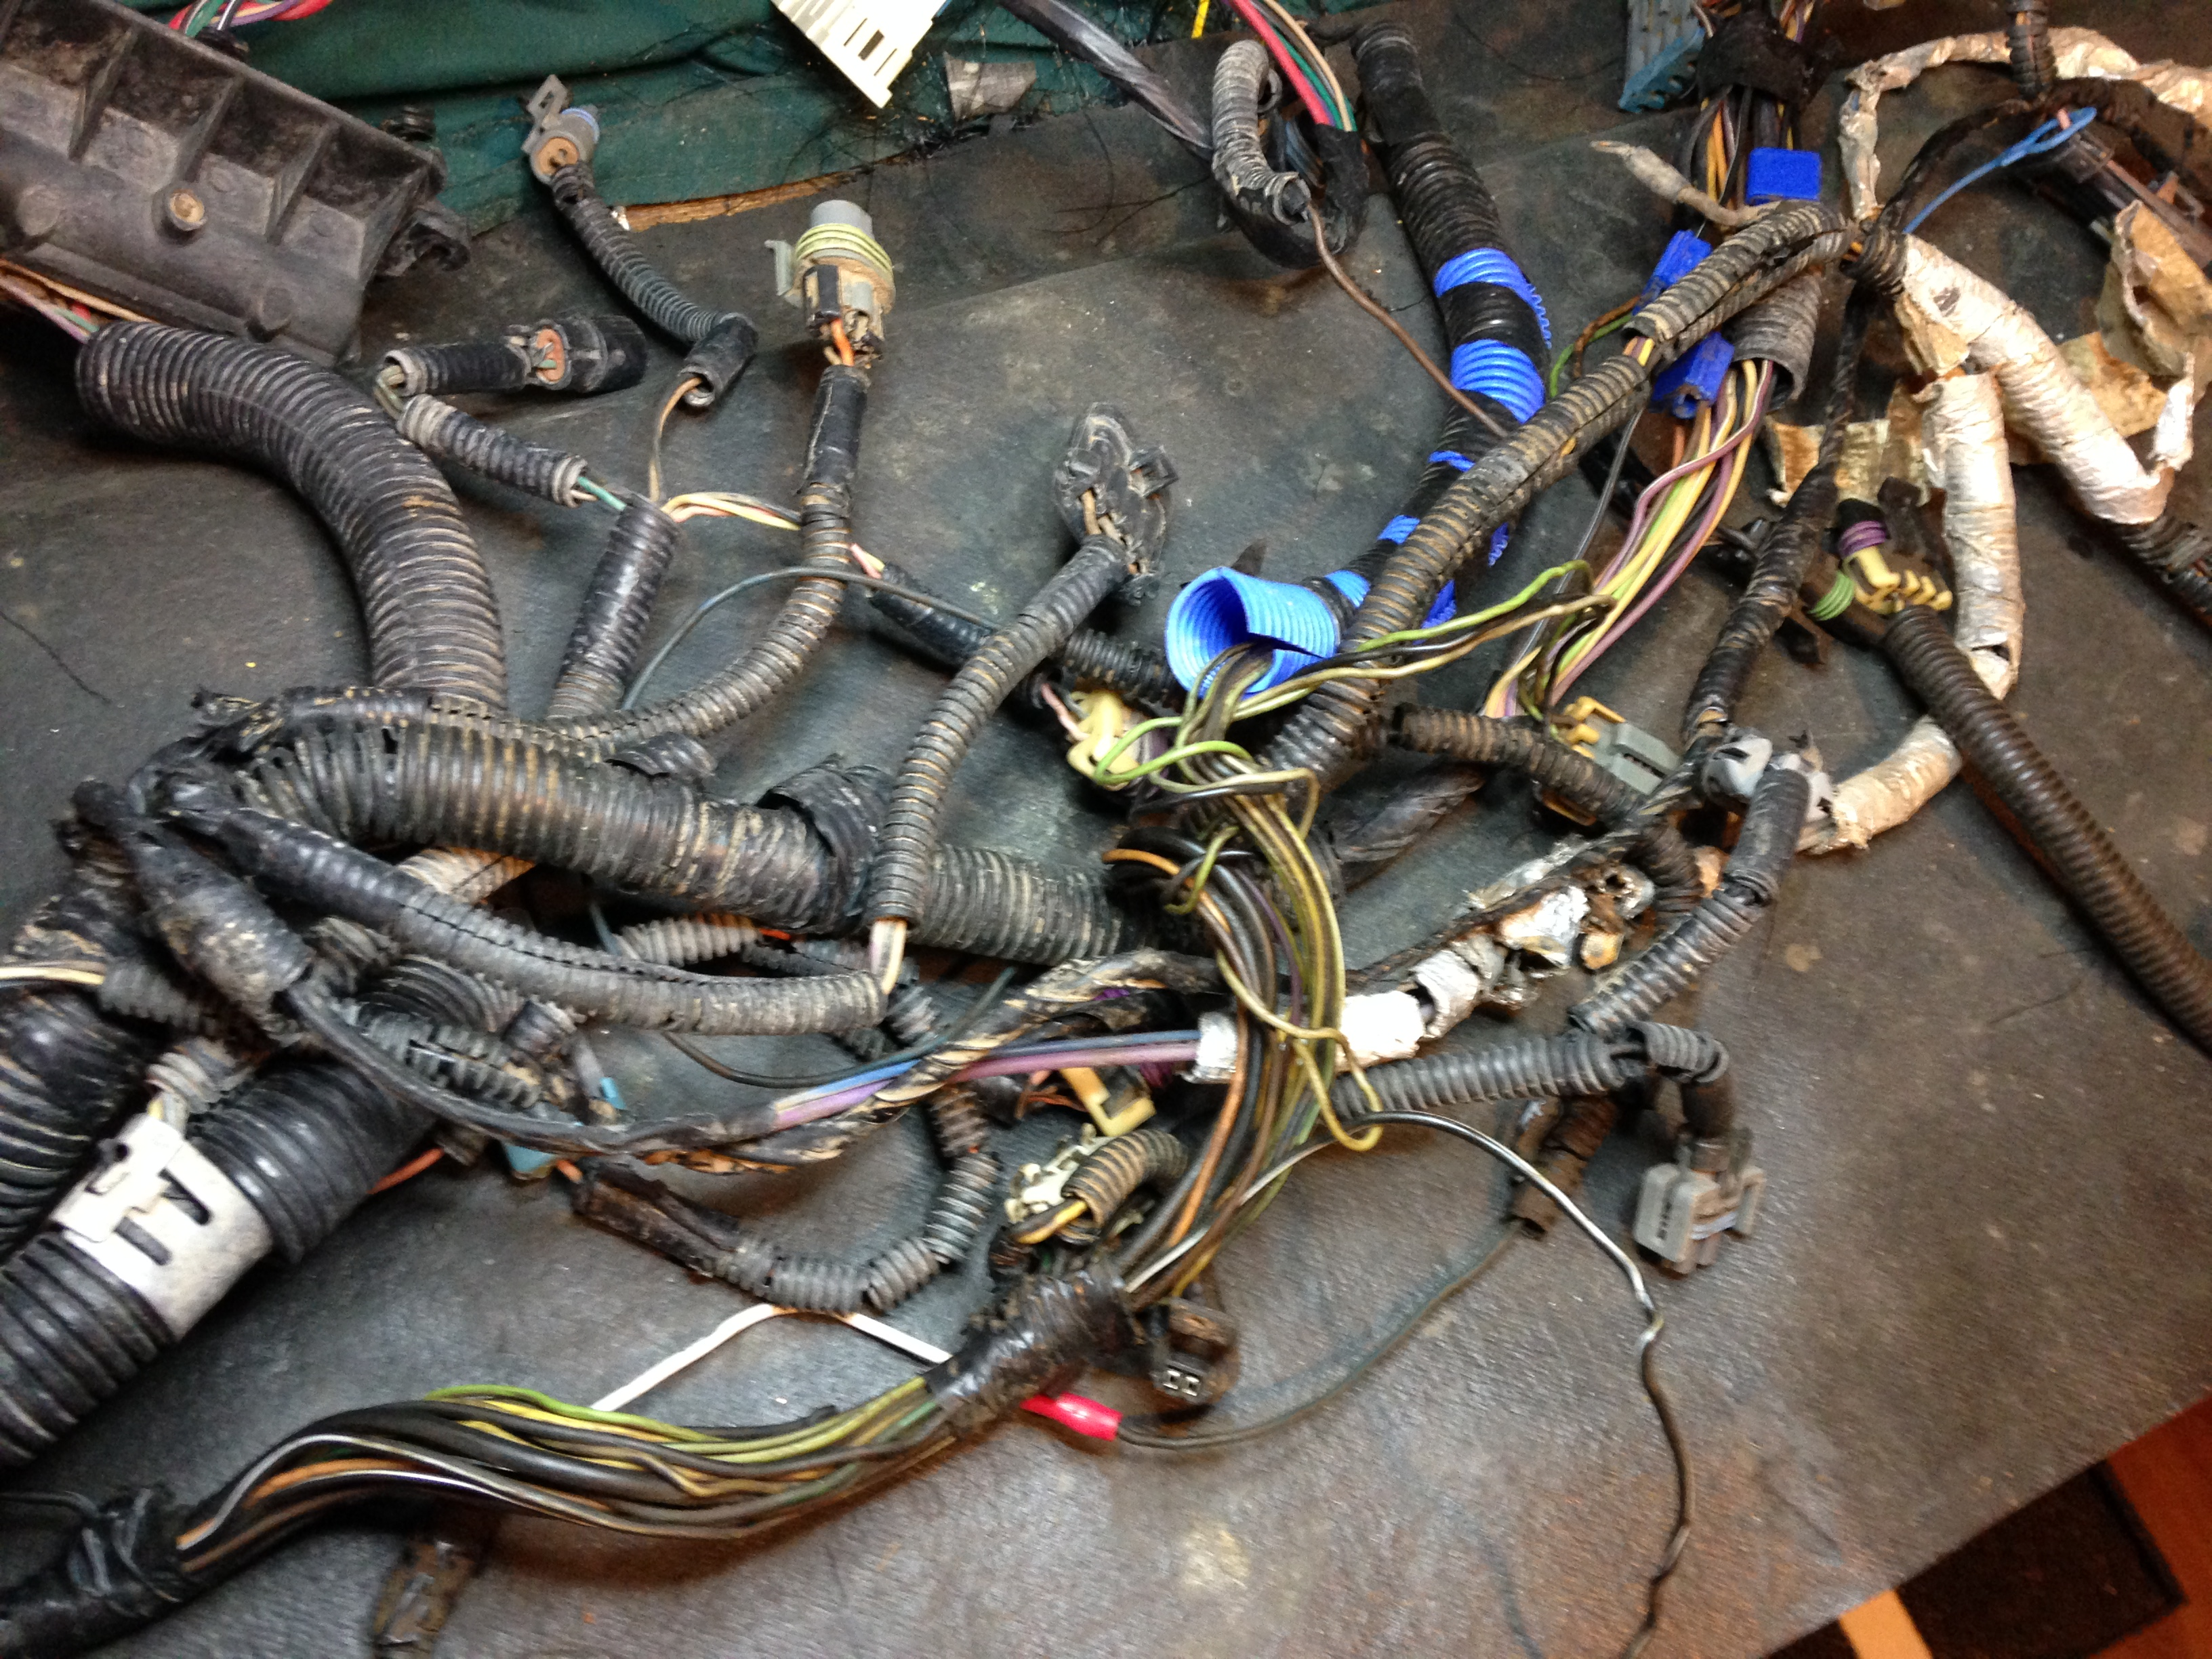 1998 dodge durango wiring harness wiring harness restoration, repair, rebuilding, customizing